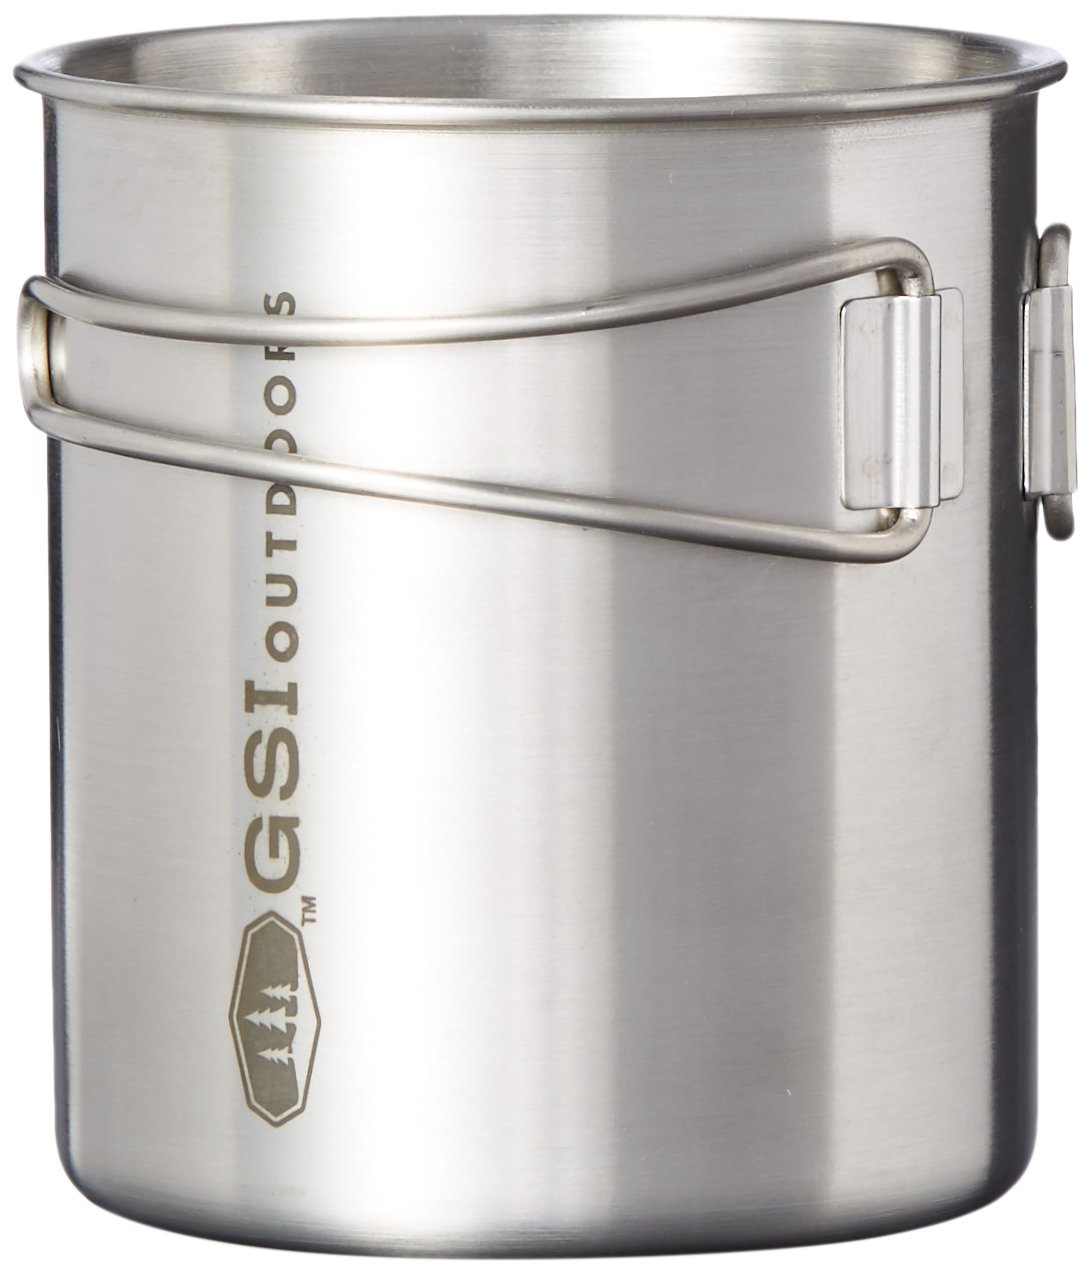 Gsi Outdoors Glacier Stainless Bottle Cup, Large Inc. 68215